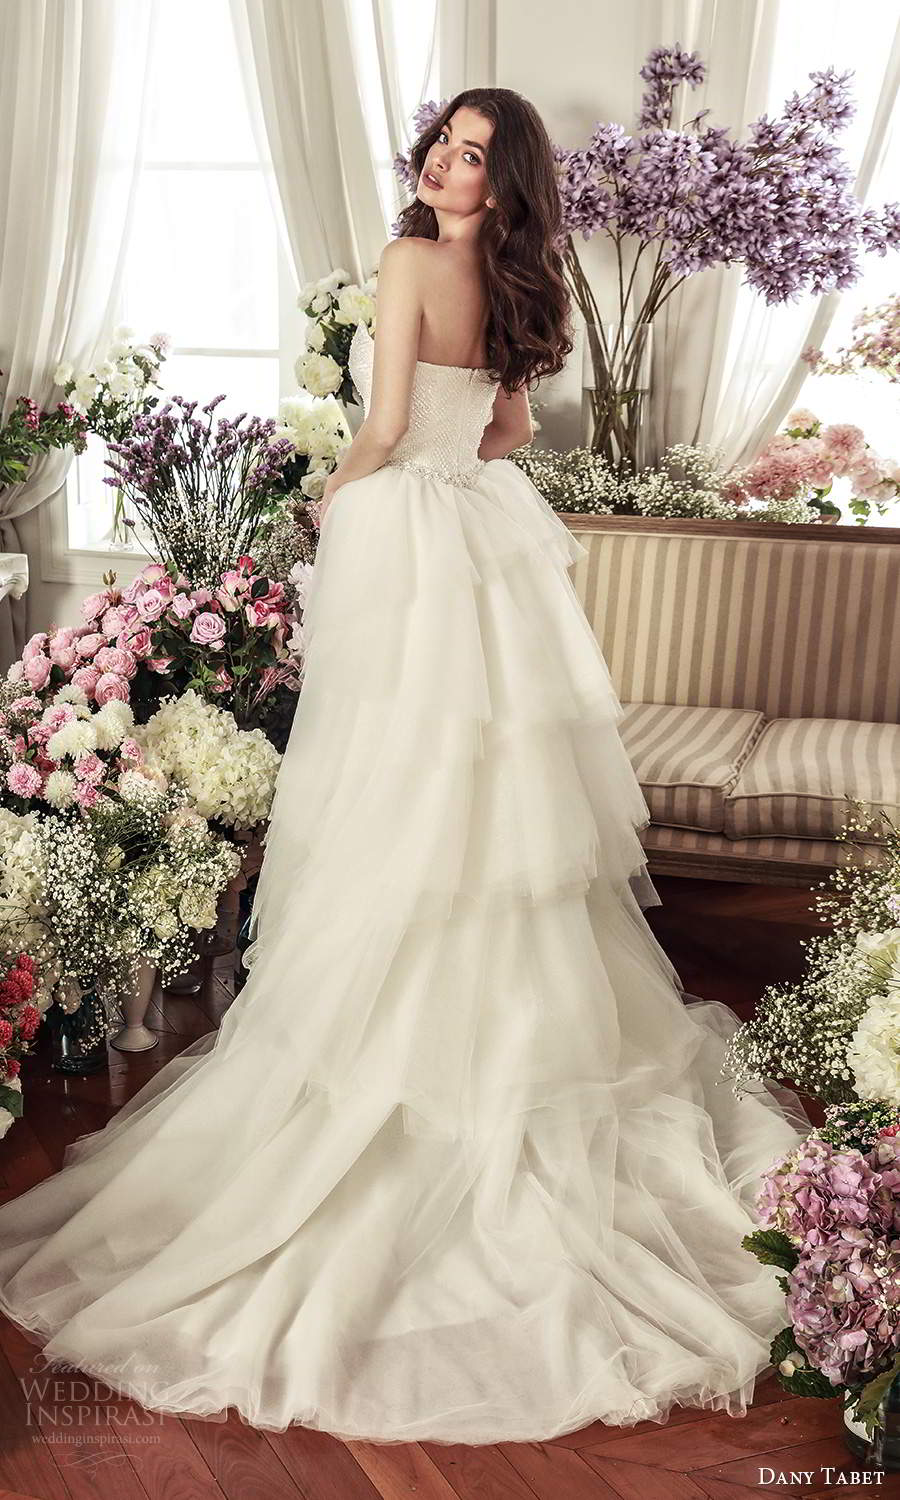 dany tabet 2021 belle fleur bridal strapless plunging sweetheart neckline fully embellished fit flare mermaid wedding dress chapel train a line ball gown overskirt (4) bv